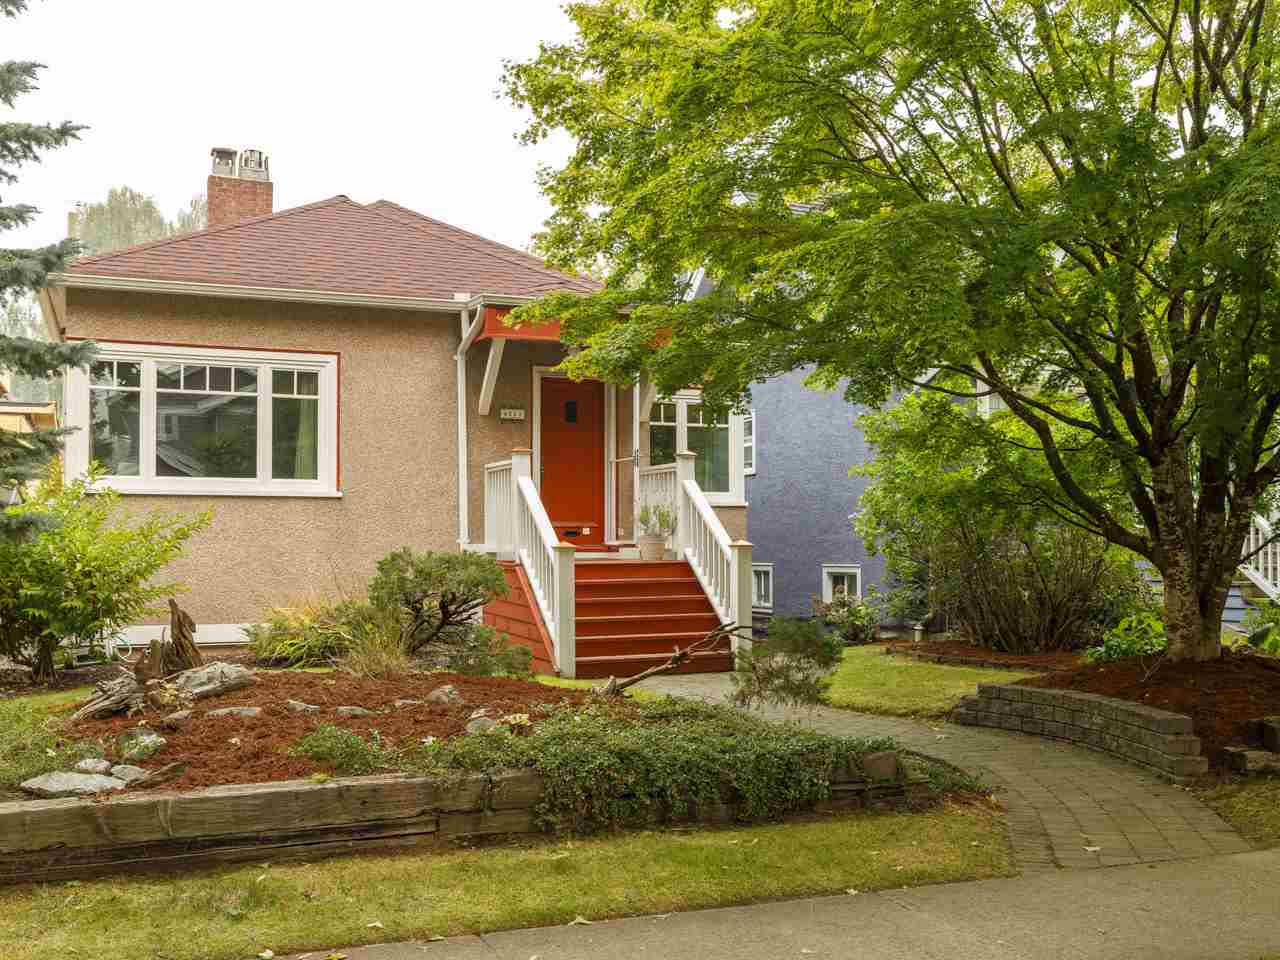 4243 W 15TH AVENUE - Point Grey House/Single Family for sale, 2 Bedrooms (R2502474)